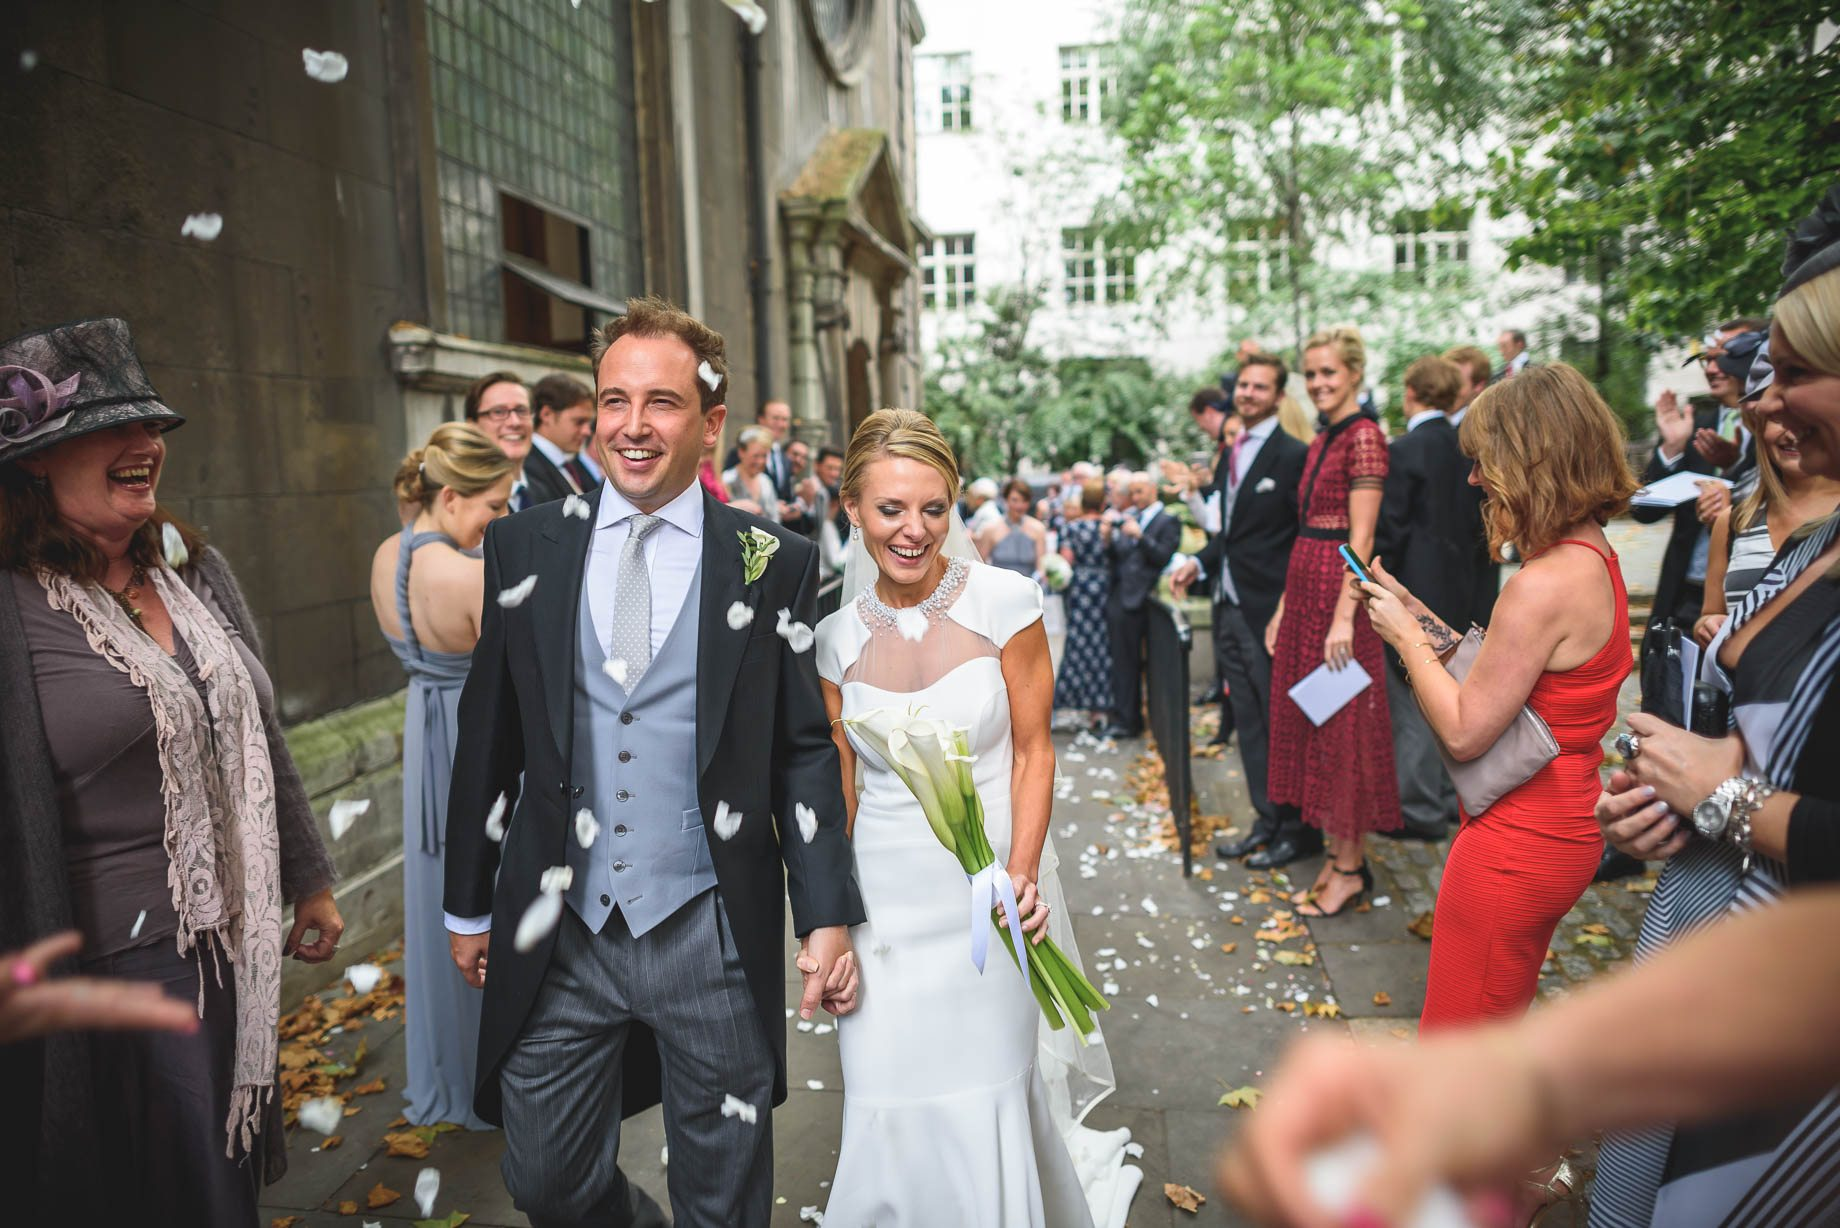 Shoreditch-wedding-photography-Guy-Collier-Kat-and-Henry-86-of-200